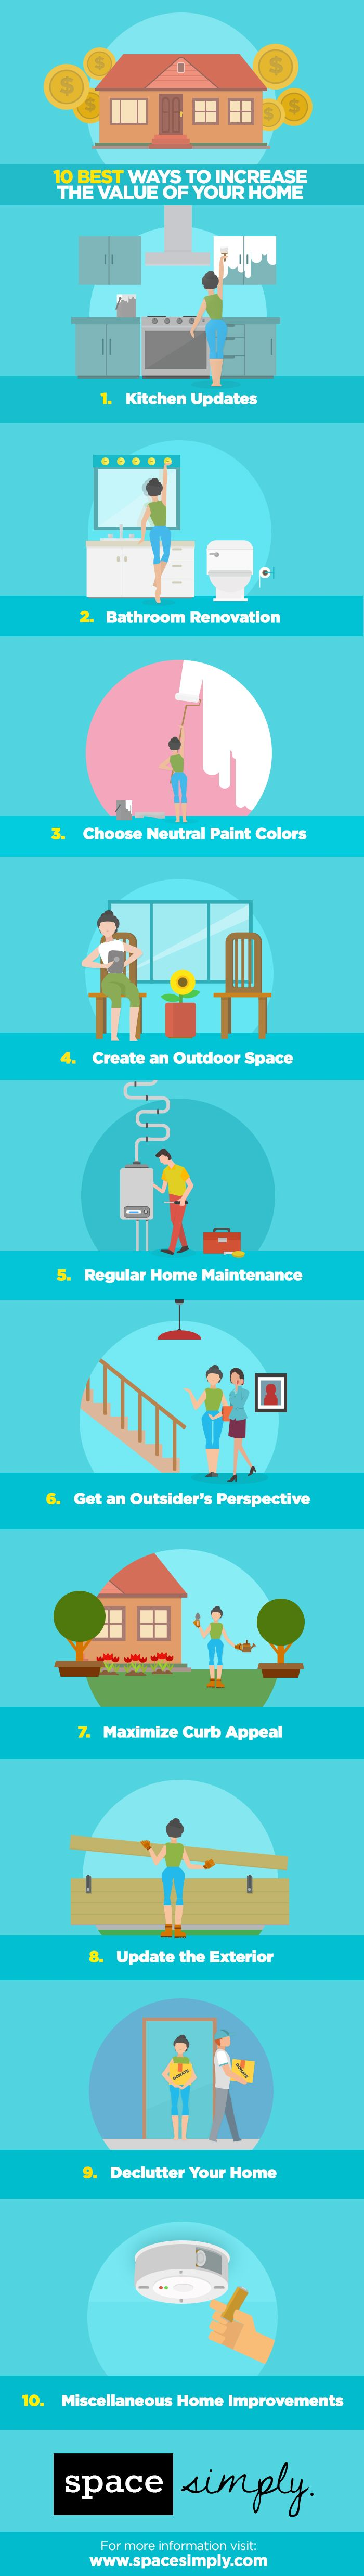 10 best ways to increase the value of your home for What improvements increase home value